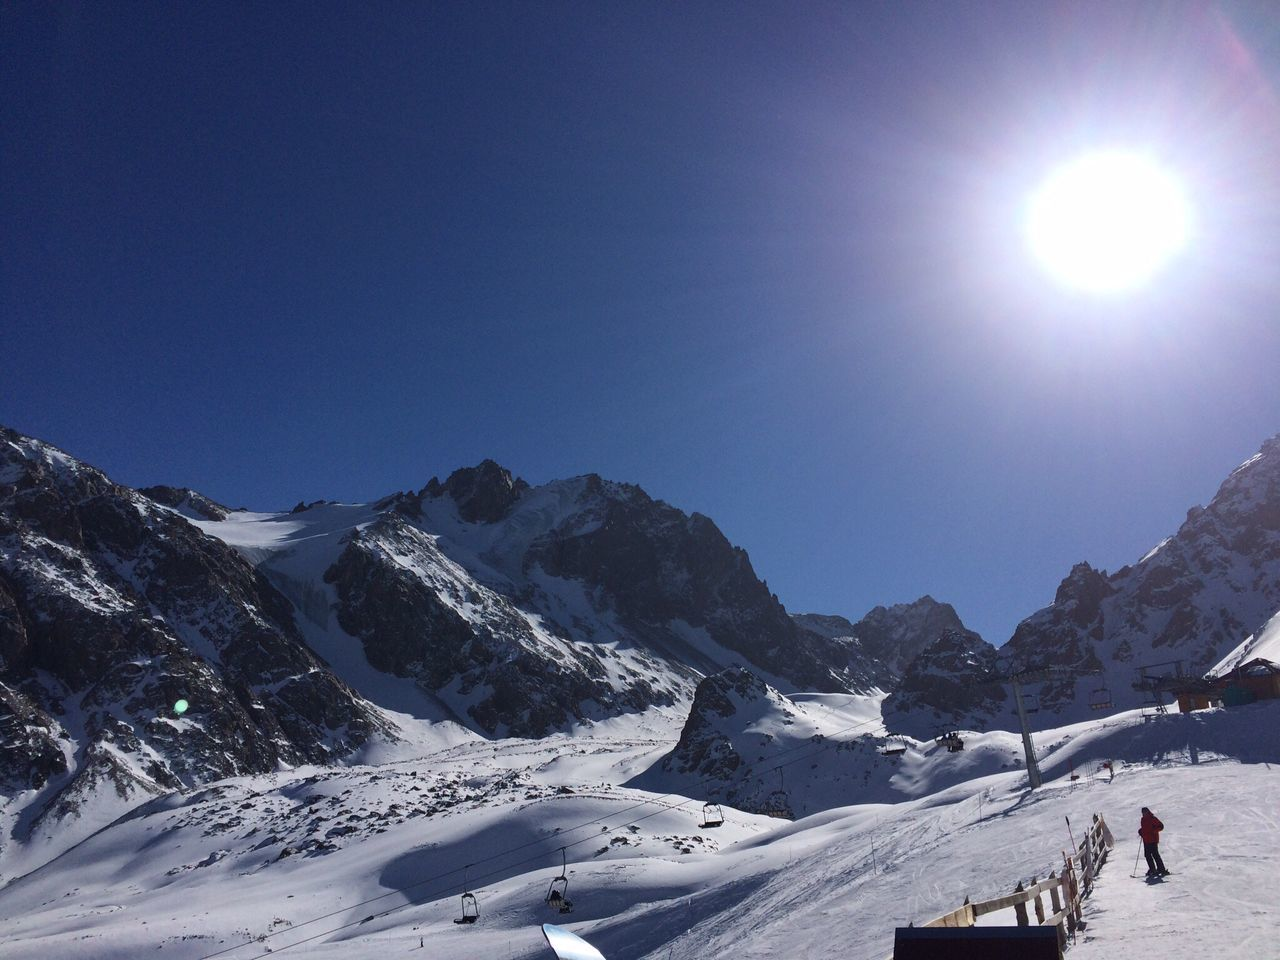 Scenic View Of Snow Covered Mountains Against Sky On Sunny Day